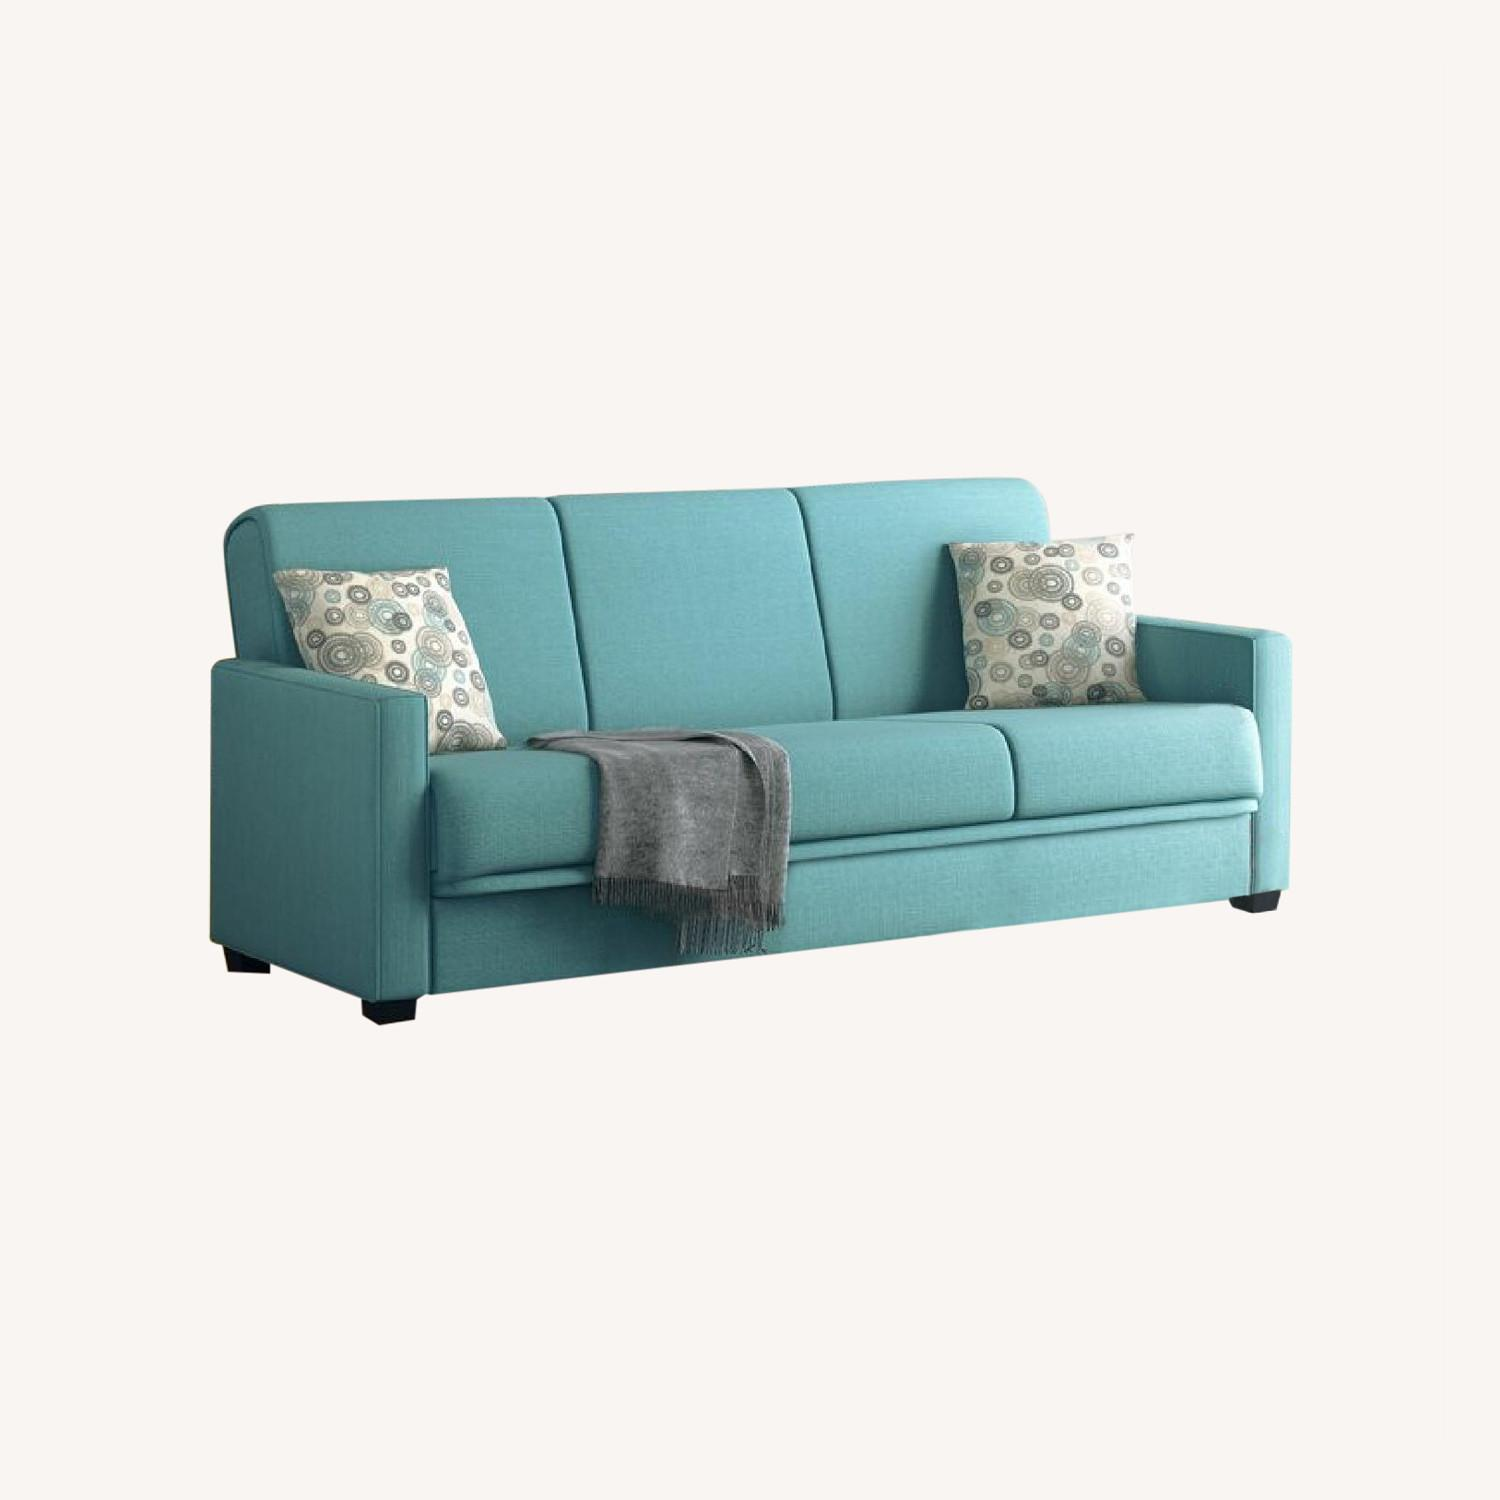 3 Seaters Sofa Bed - image-5